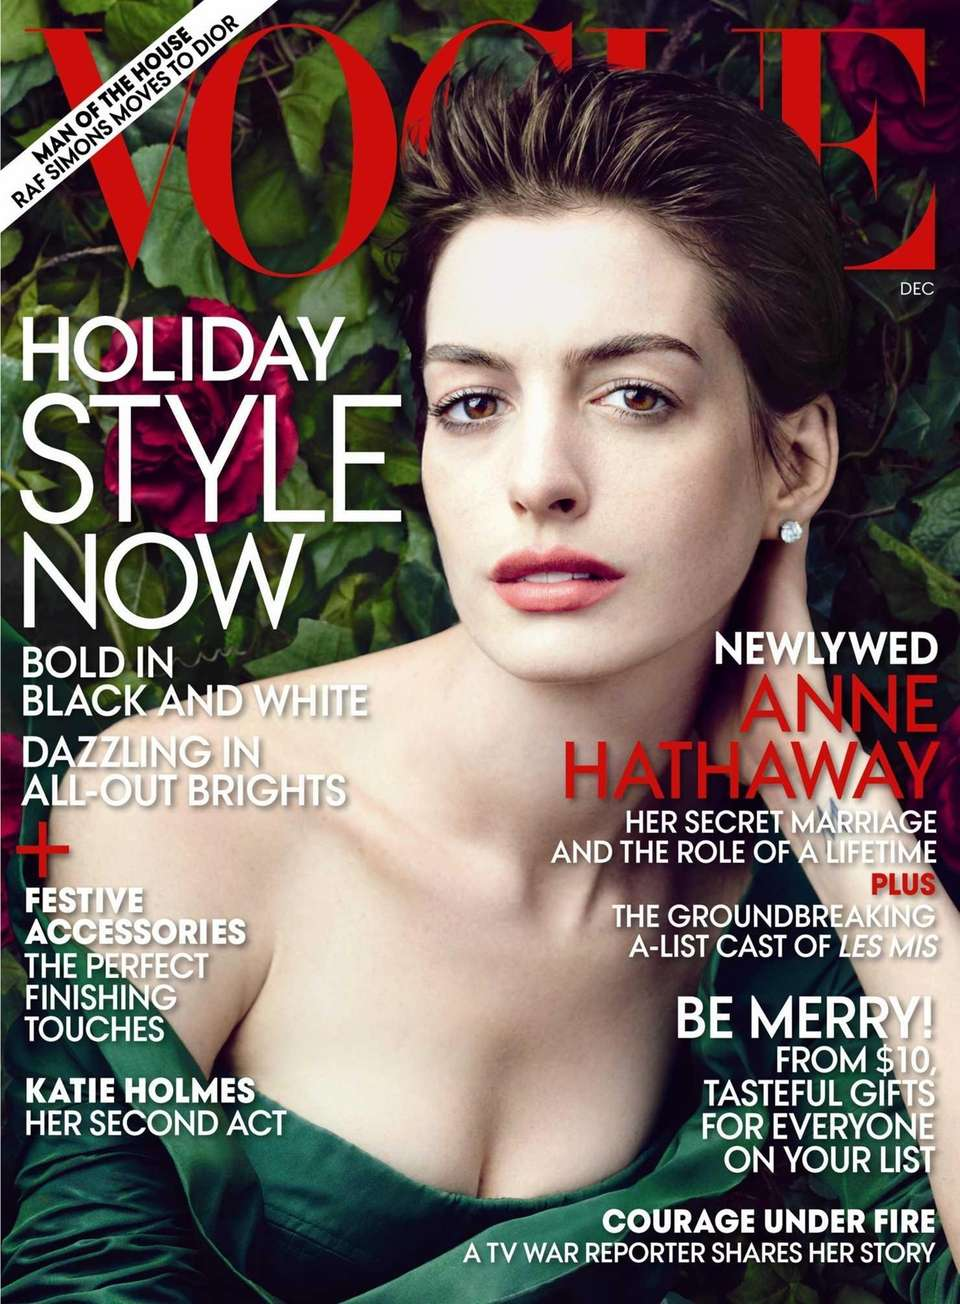 Anne Hathaway on the cover of the December